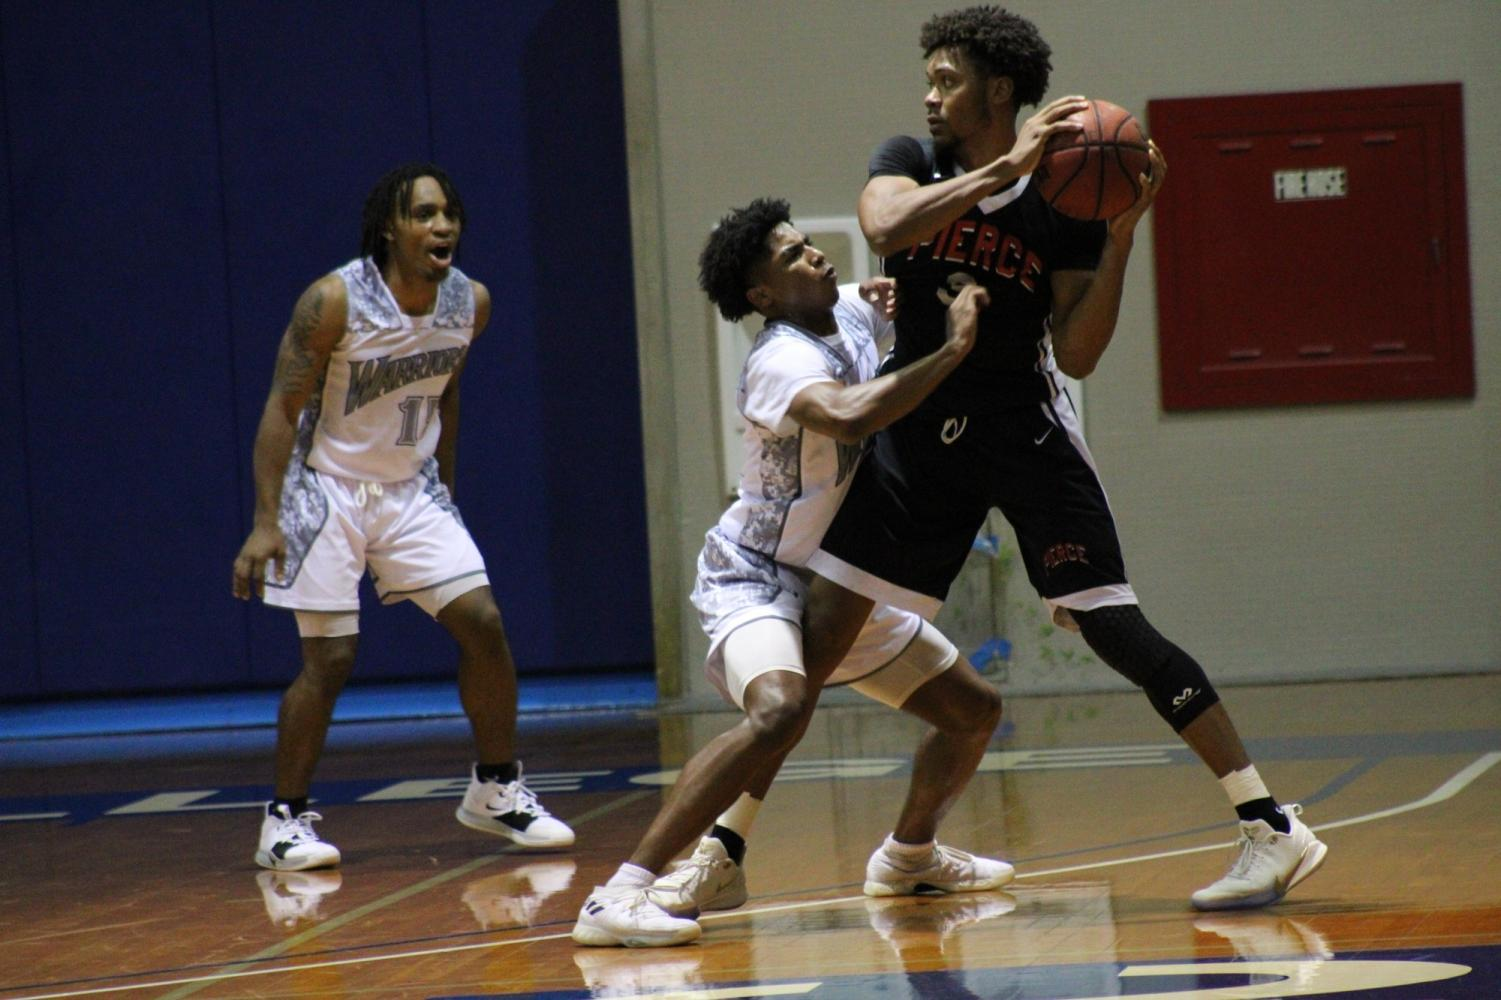 El Camino College men's basketball guard Corey Madison plays tight defense on Los Angeles Pierce College Dallas Johnsons while fellow Warrior Oshuia Alston encourages him and awaits on the side during the game Wednesday, Nov. 6, at ECC's North Gym. Jaime Solis/The Union